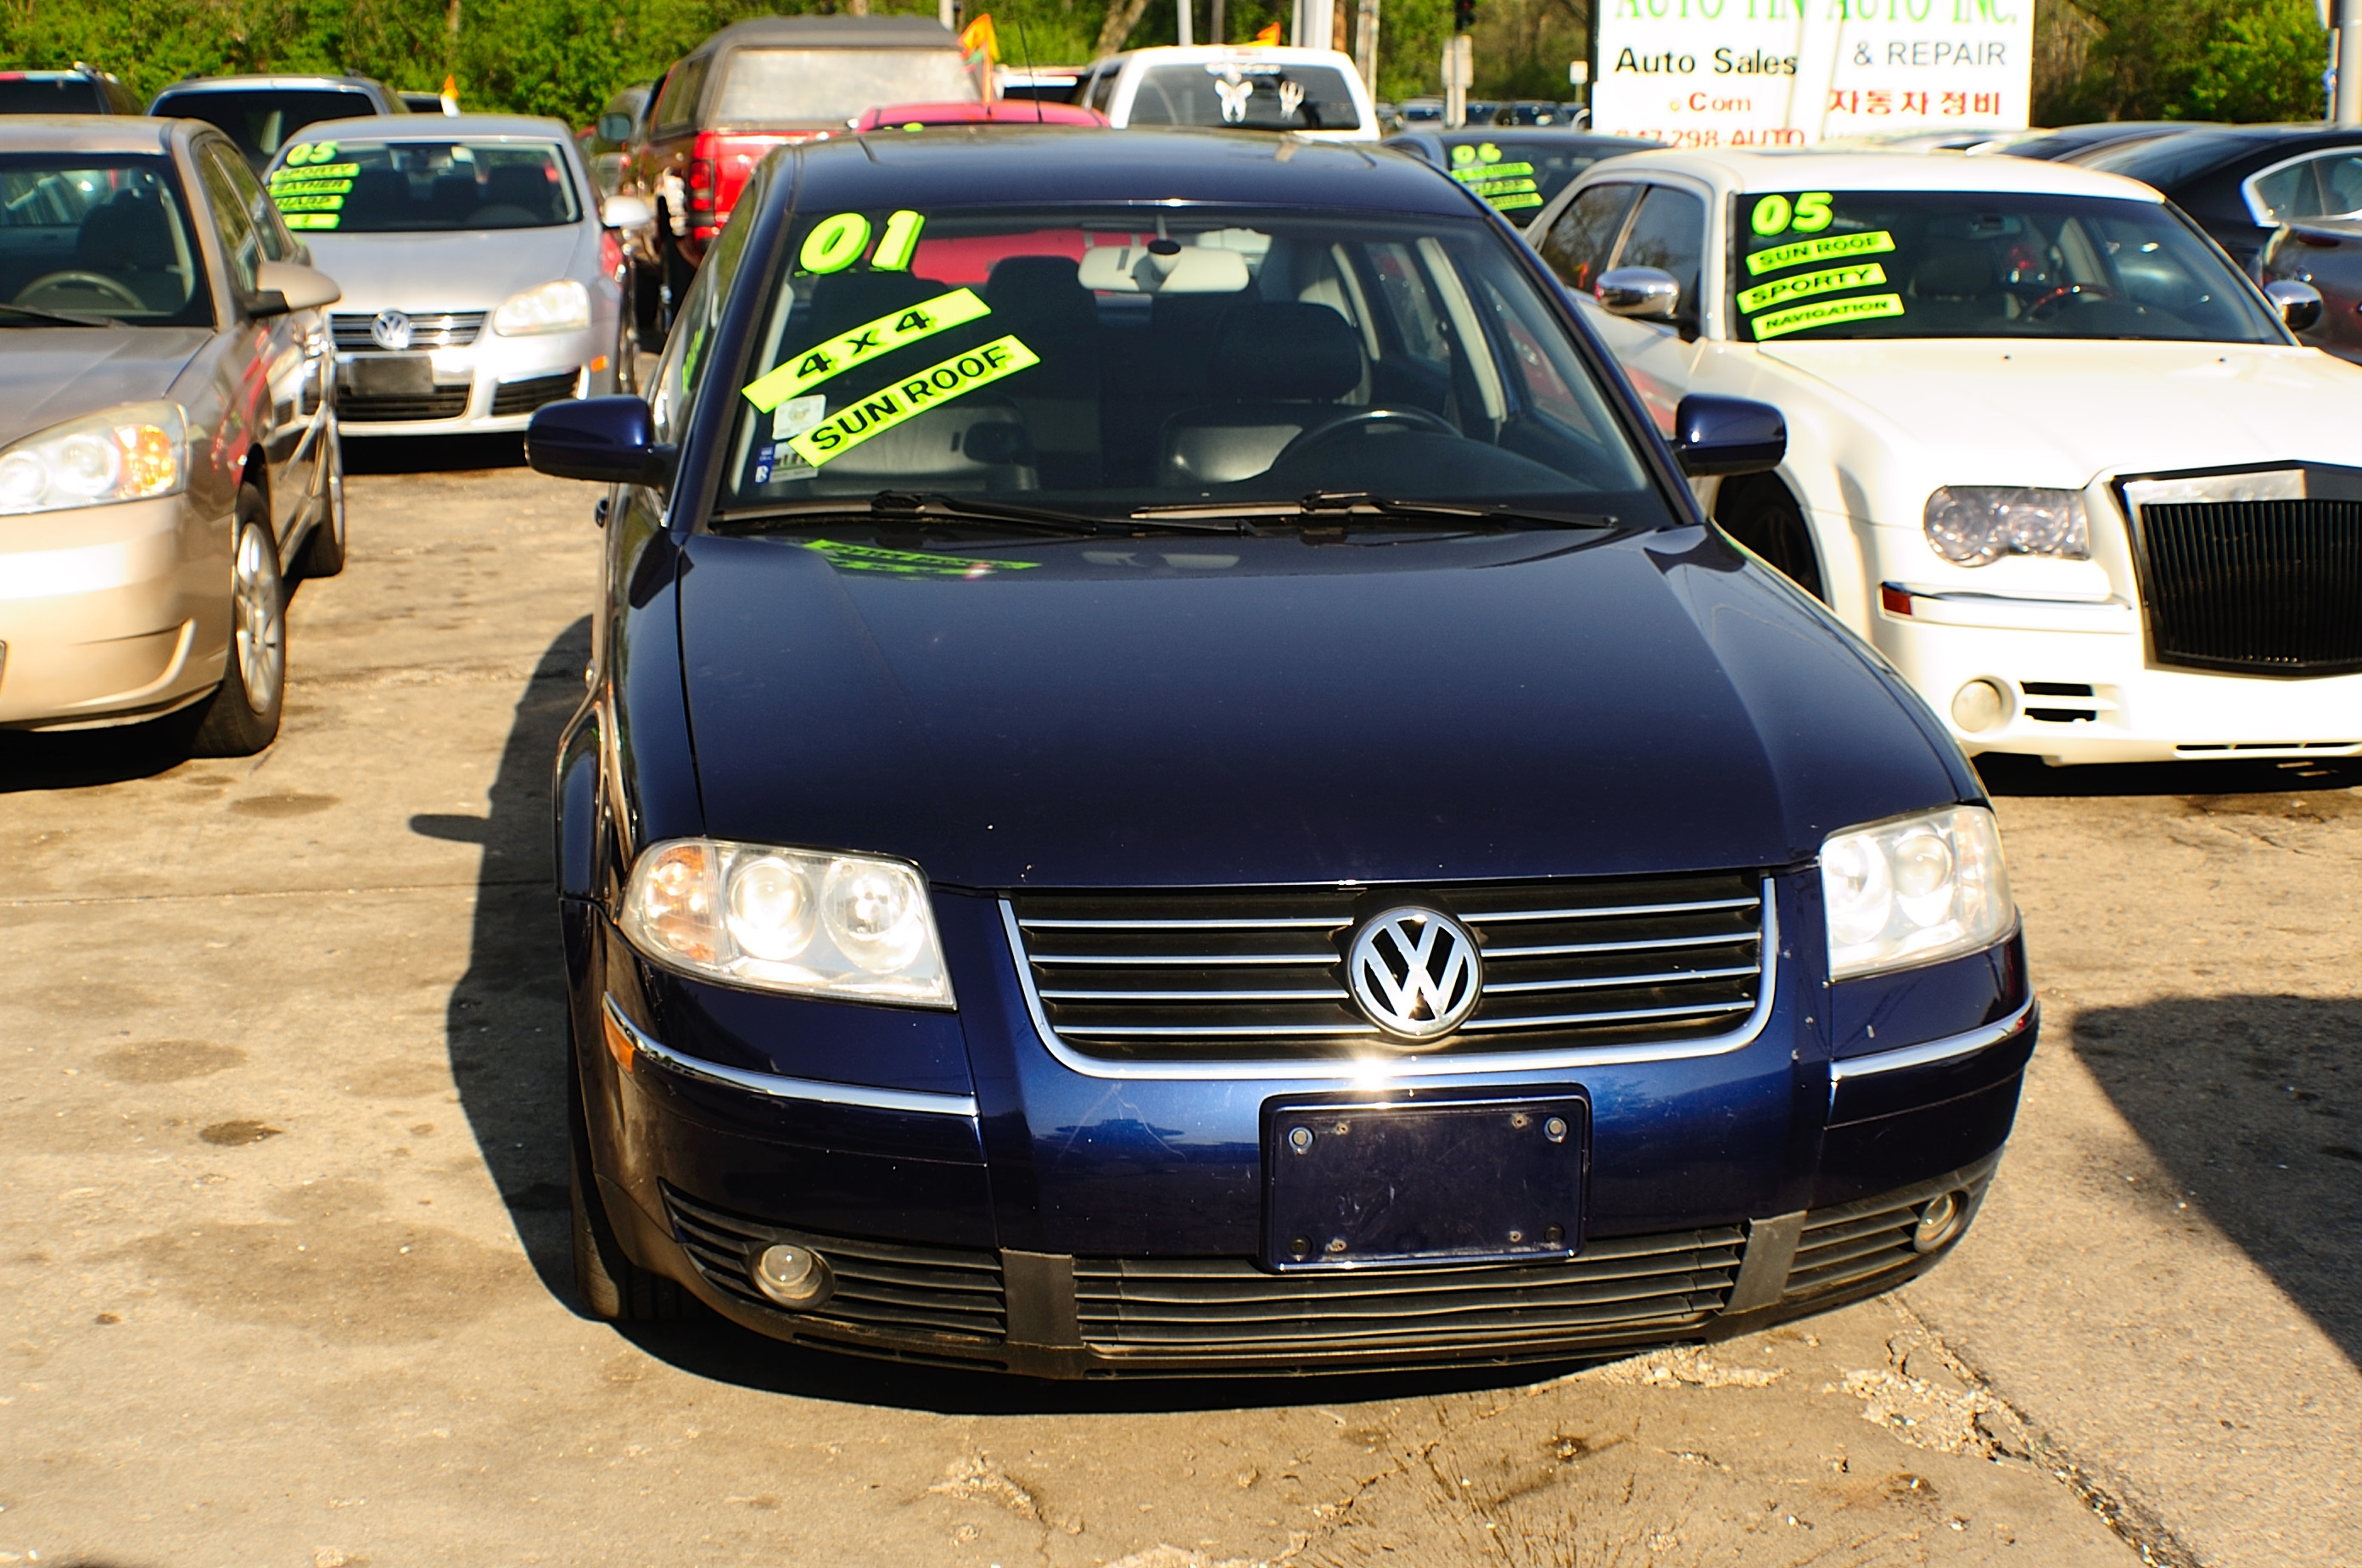 2001 Volkswagen Passat Blue Used Sedan